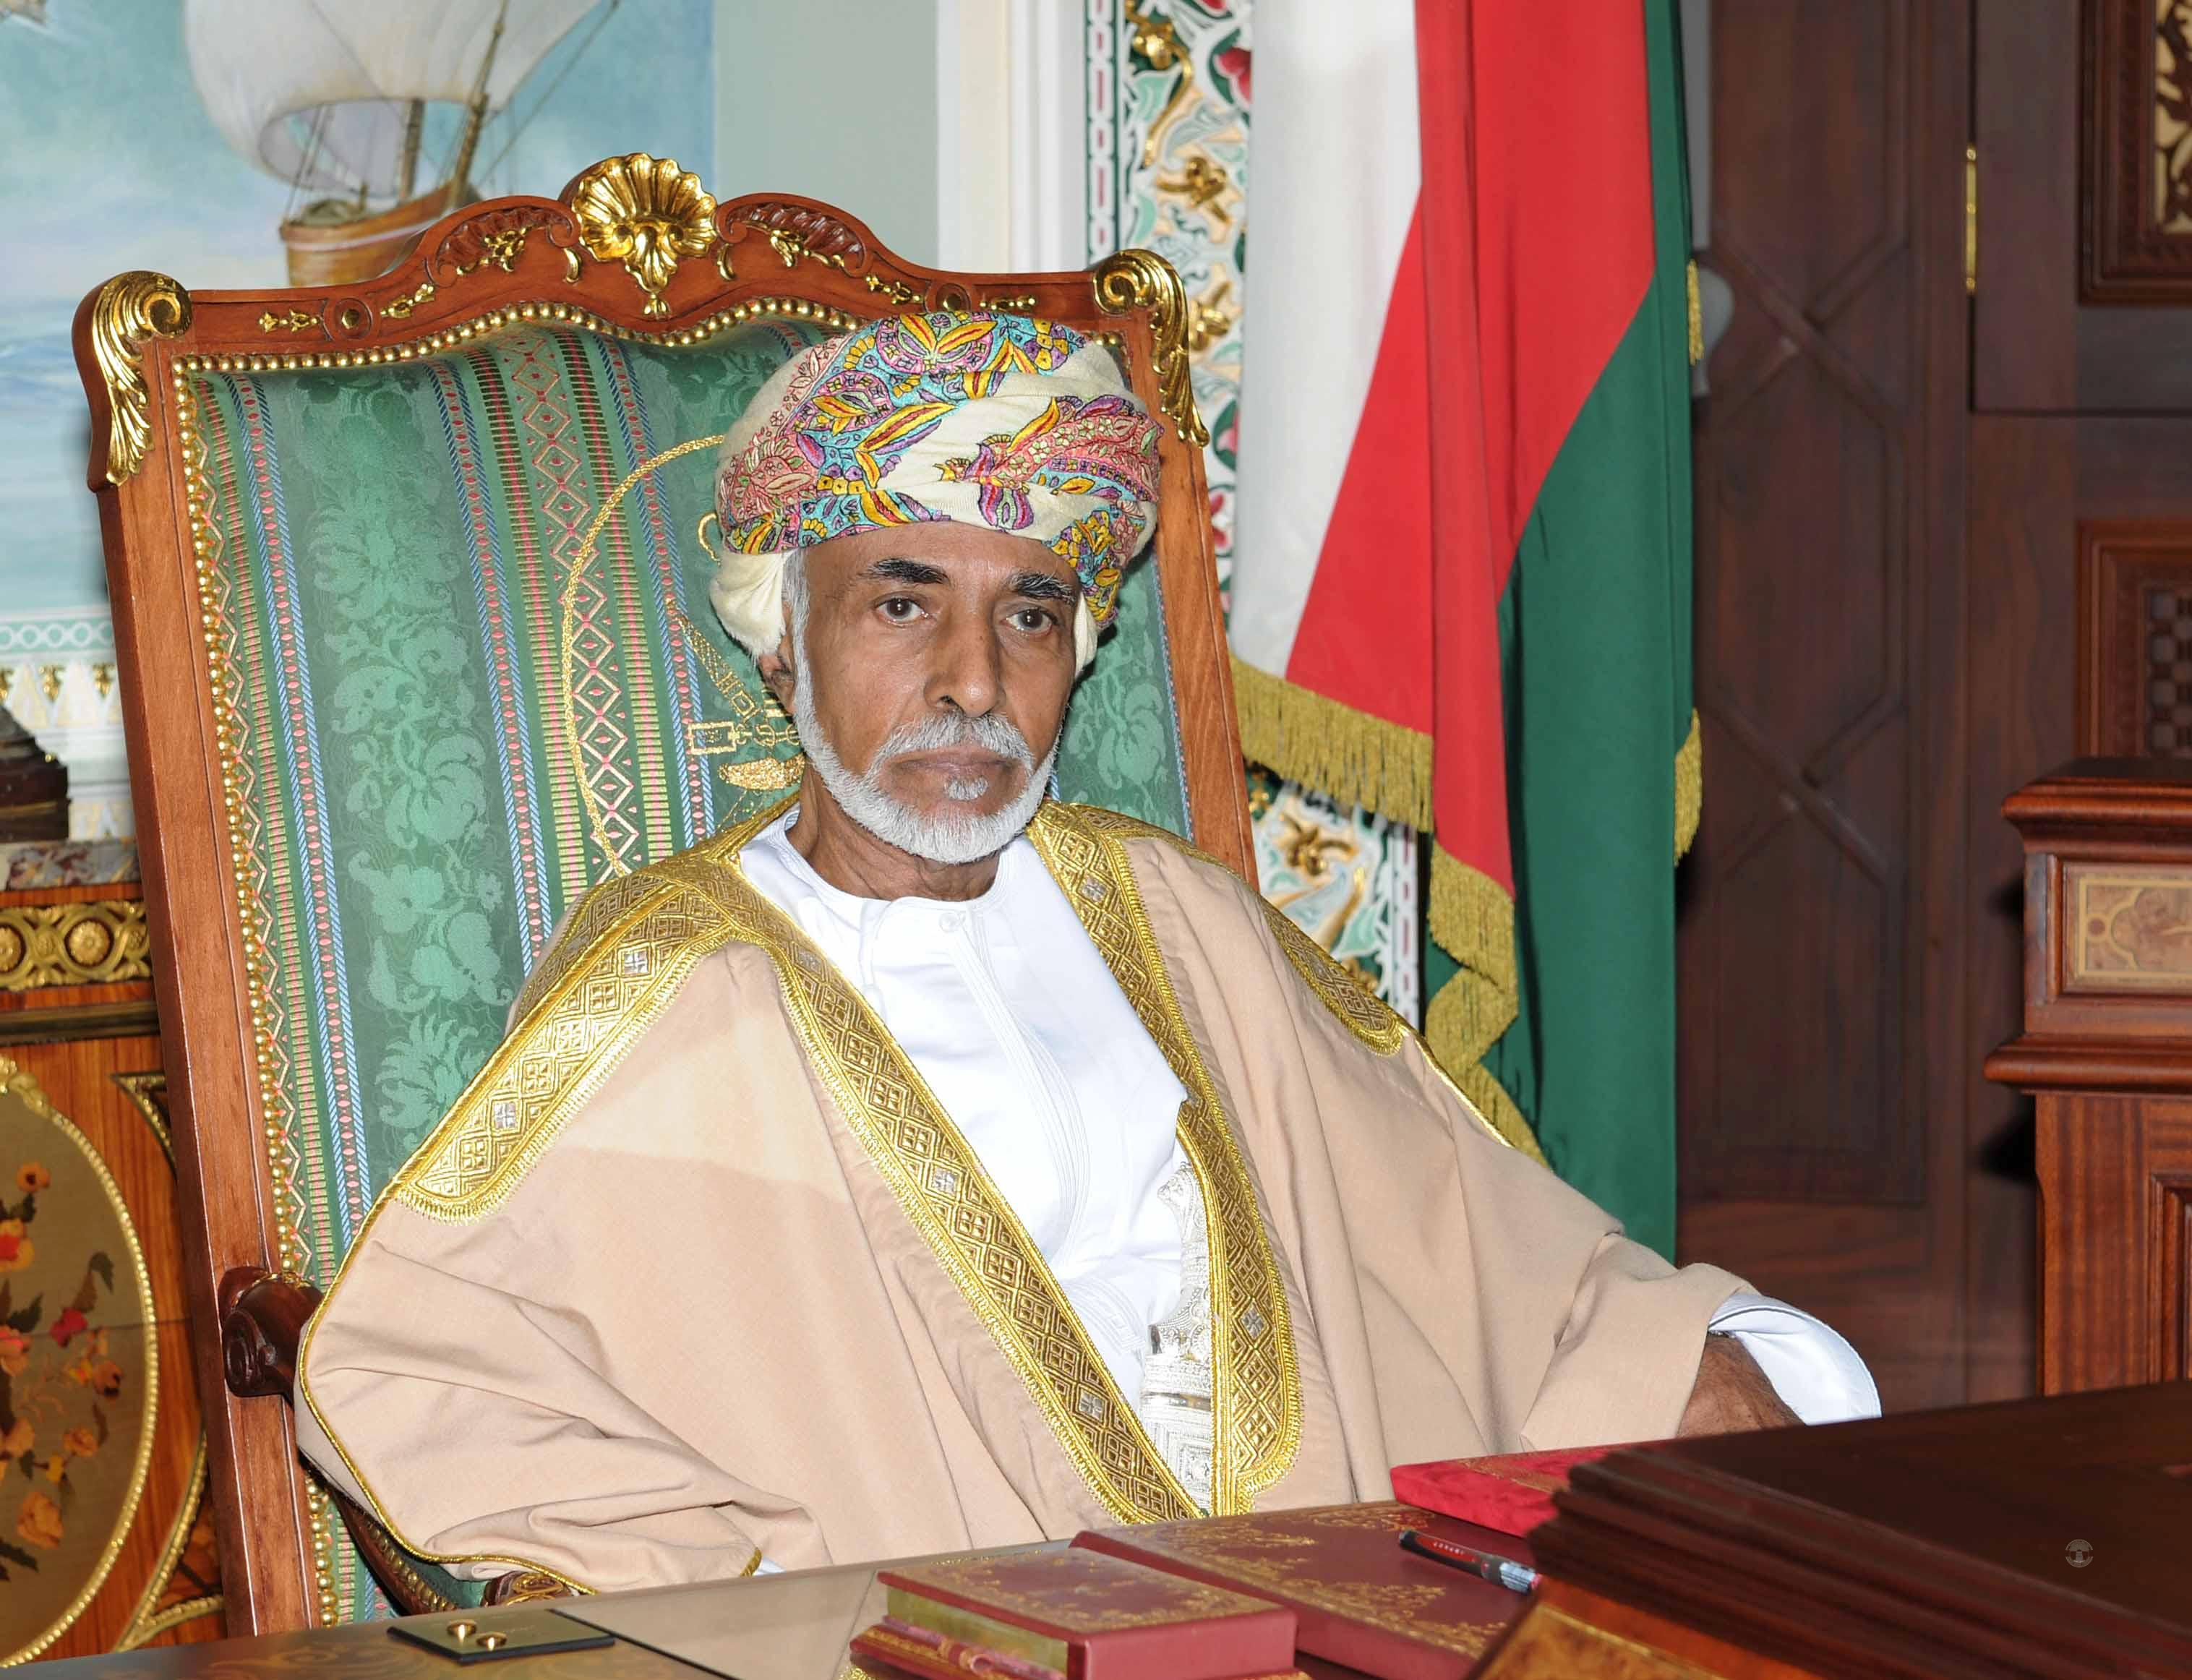 His Majesty Sultan Qaboos sends greetings to Thailand, Nicaragua and Finland